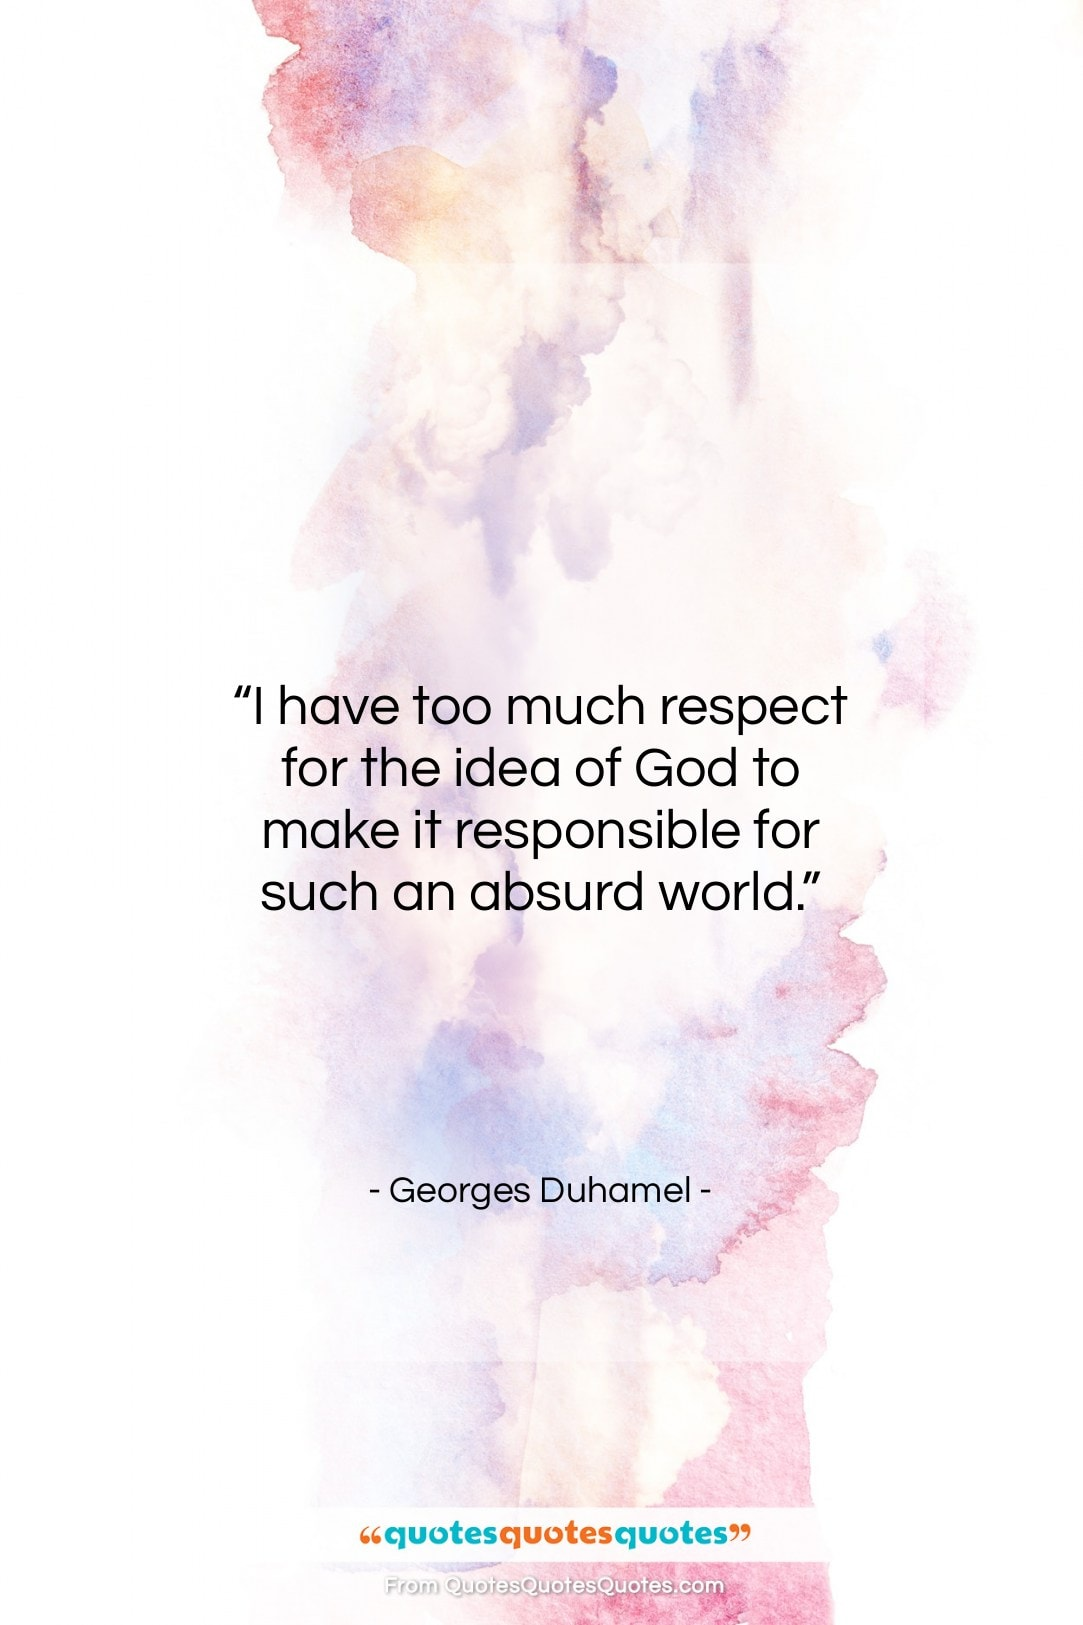 """Georges Duhamel quote: """"I have too much respect for the…""""- at QuotesQuotesQuotes.com"""